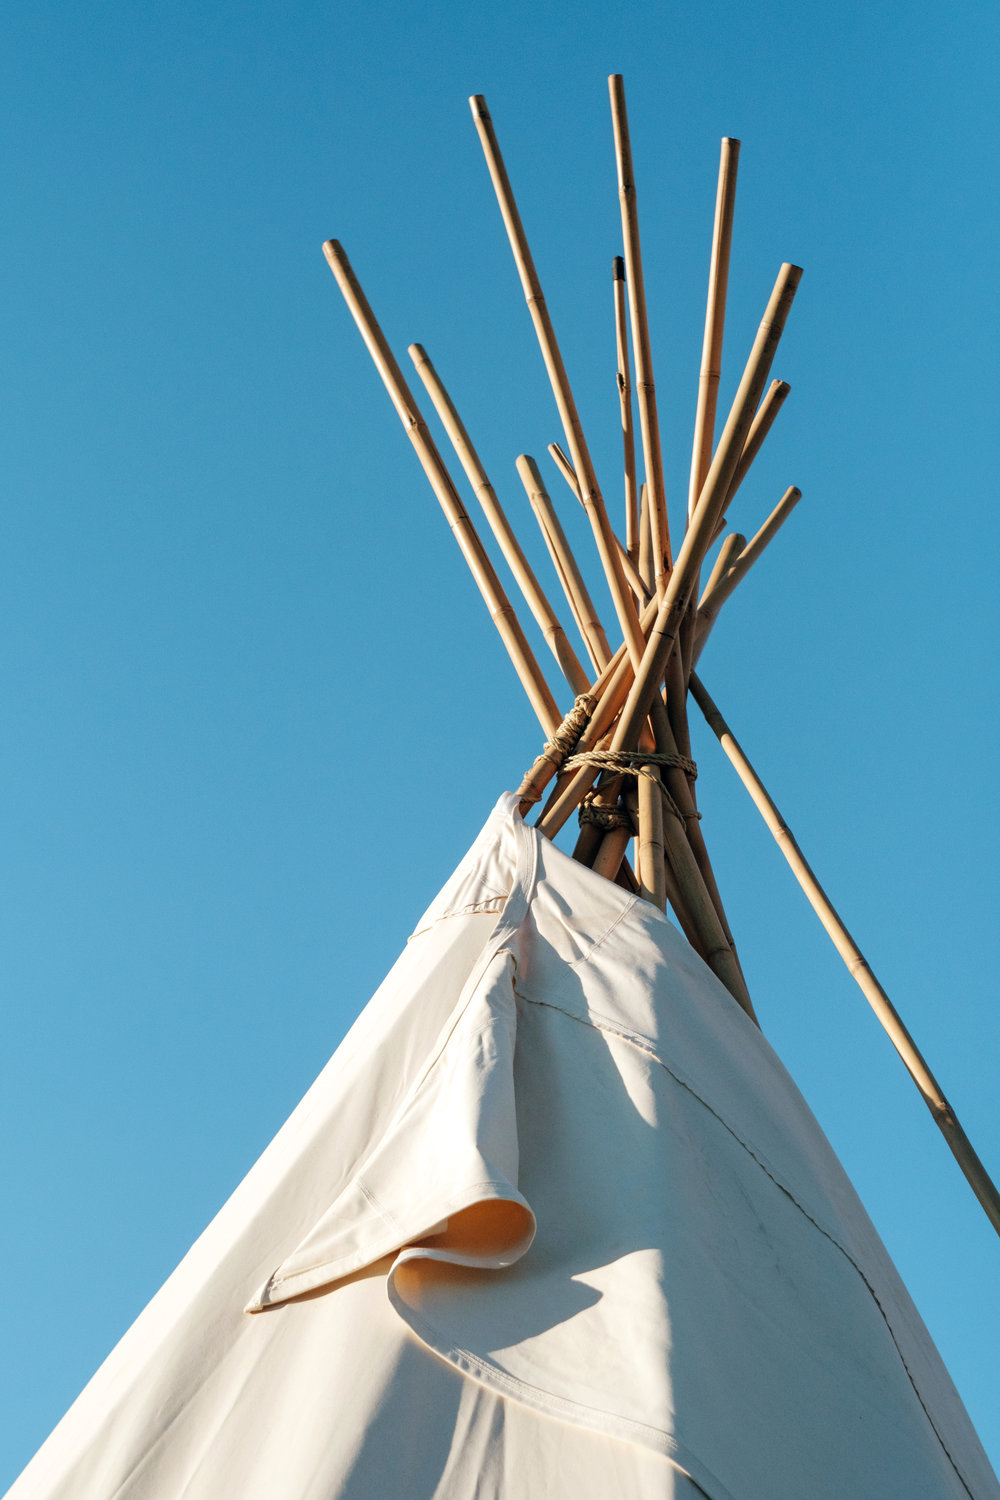 Open Tipi Sacred Space - The Astral Tipi is held as a space for people to come together and honor each others being in this world. Every evening, when in need for inner quiet, the tipi is there for us. This space is meant for all and to be shared with gratitude and respect.